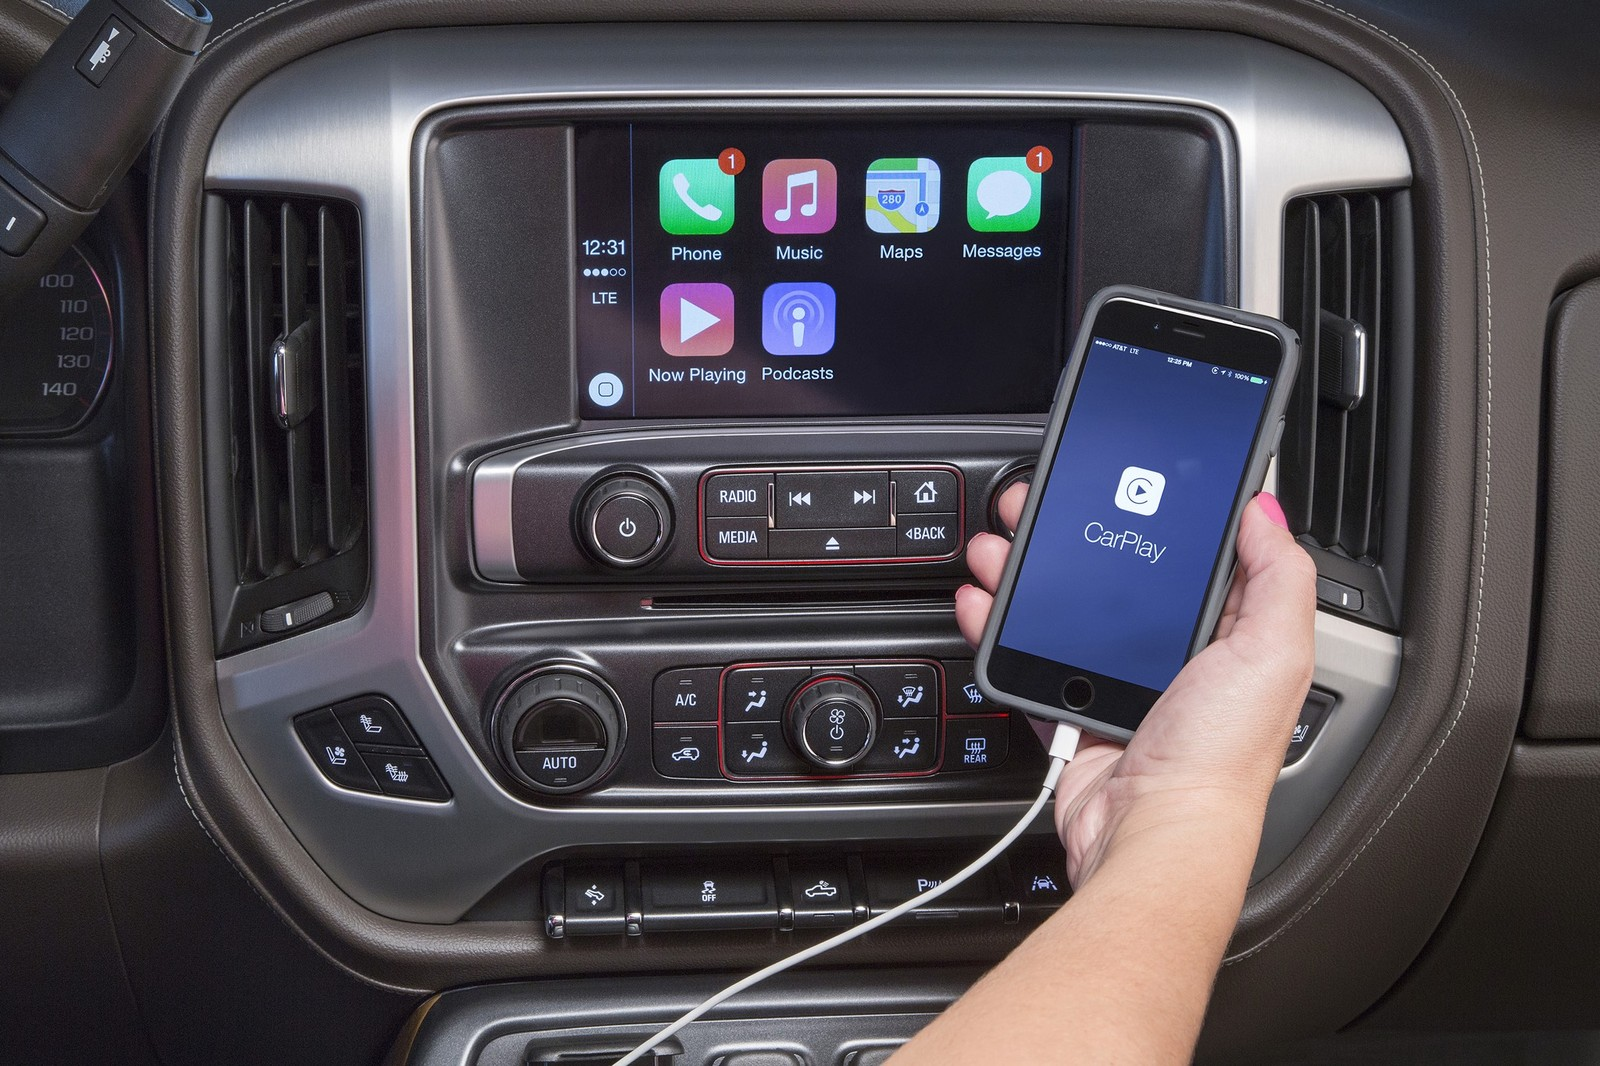 CarPlay support announced for select 2016 GMC and Buick models